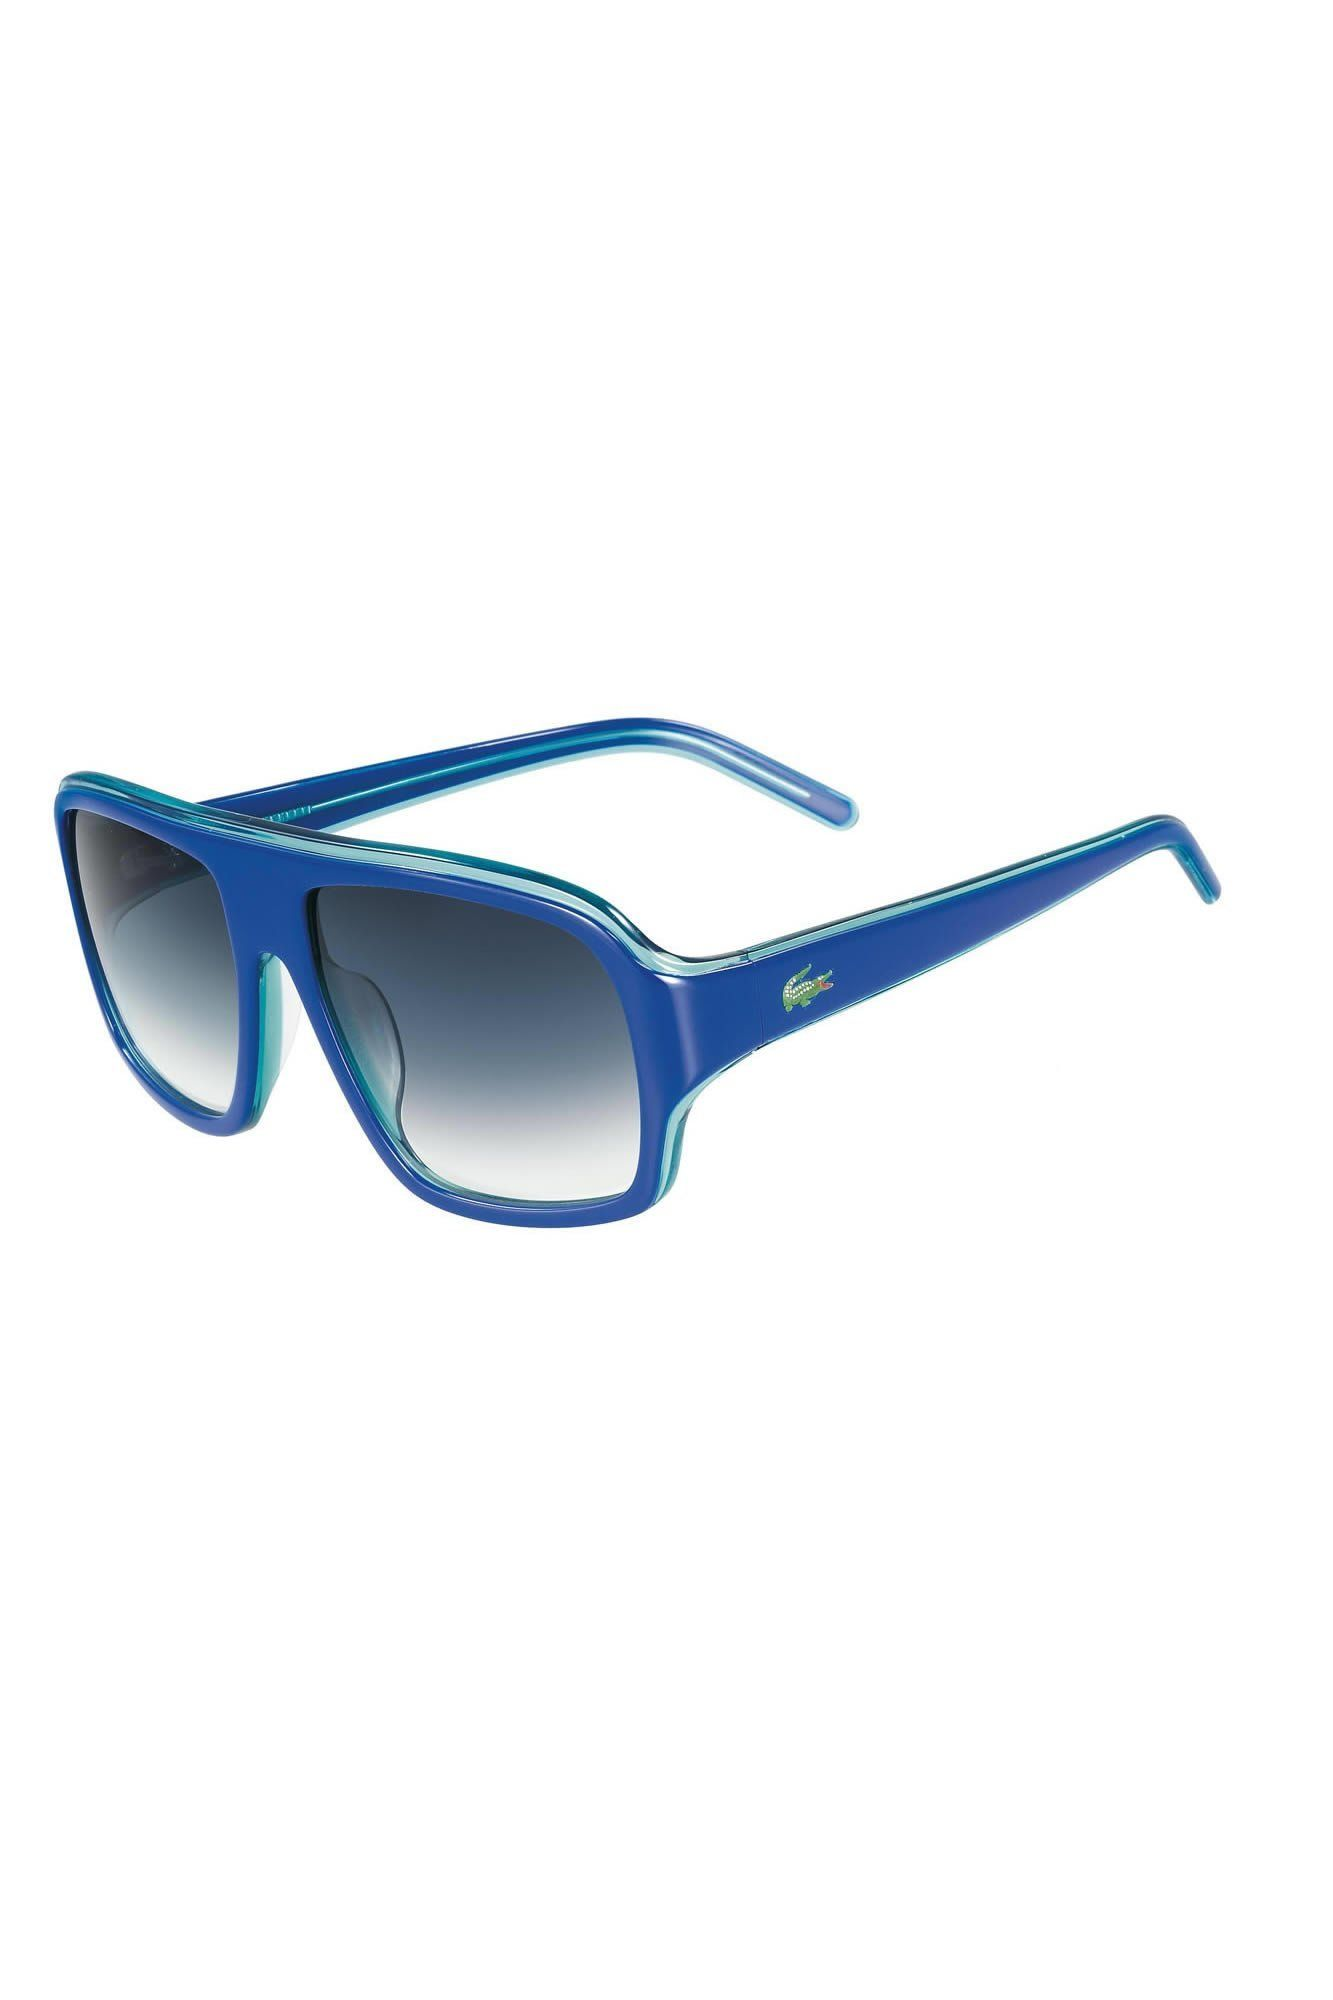 42de5b9383 Lacoste Men's Landon : Sunglasses | Acsesorios in 2019 | Lentes de ...